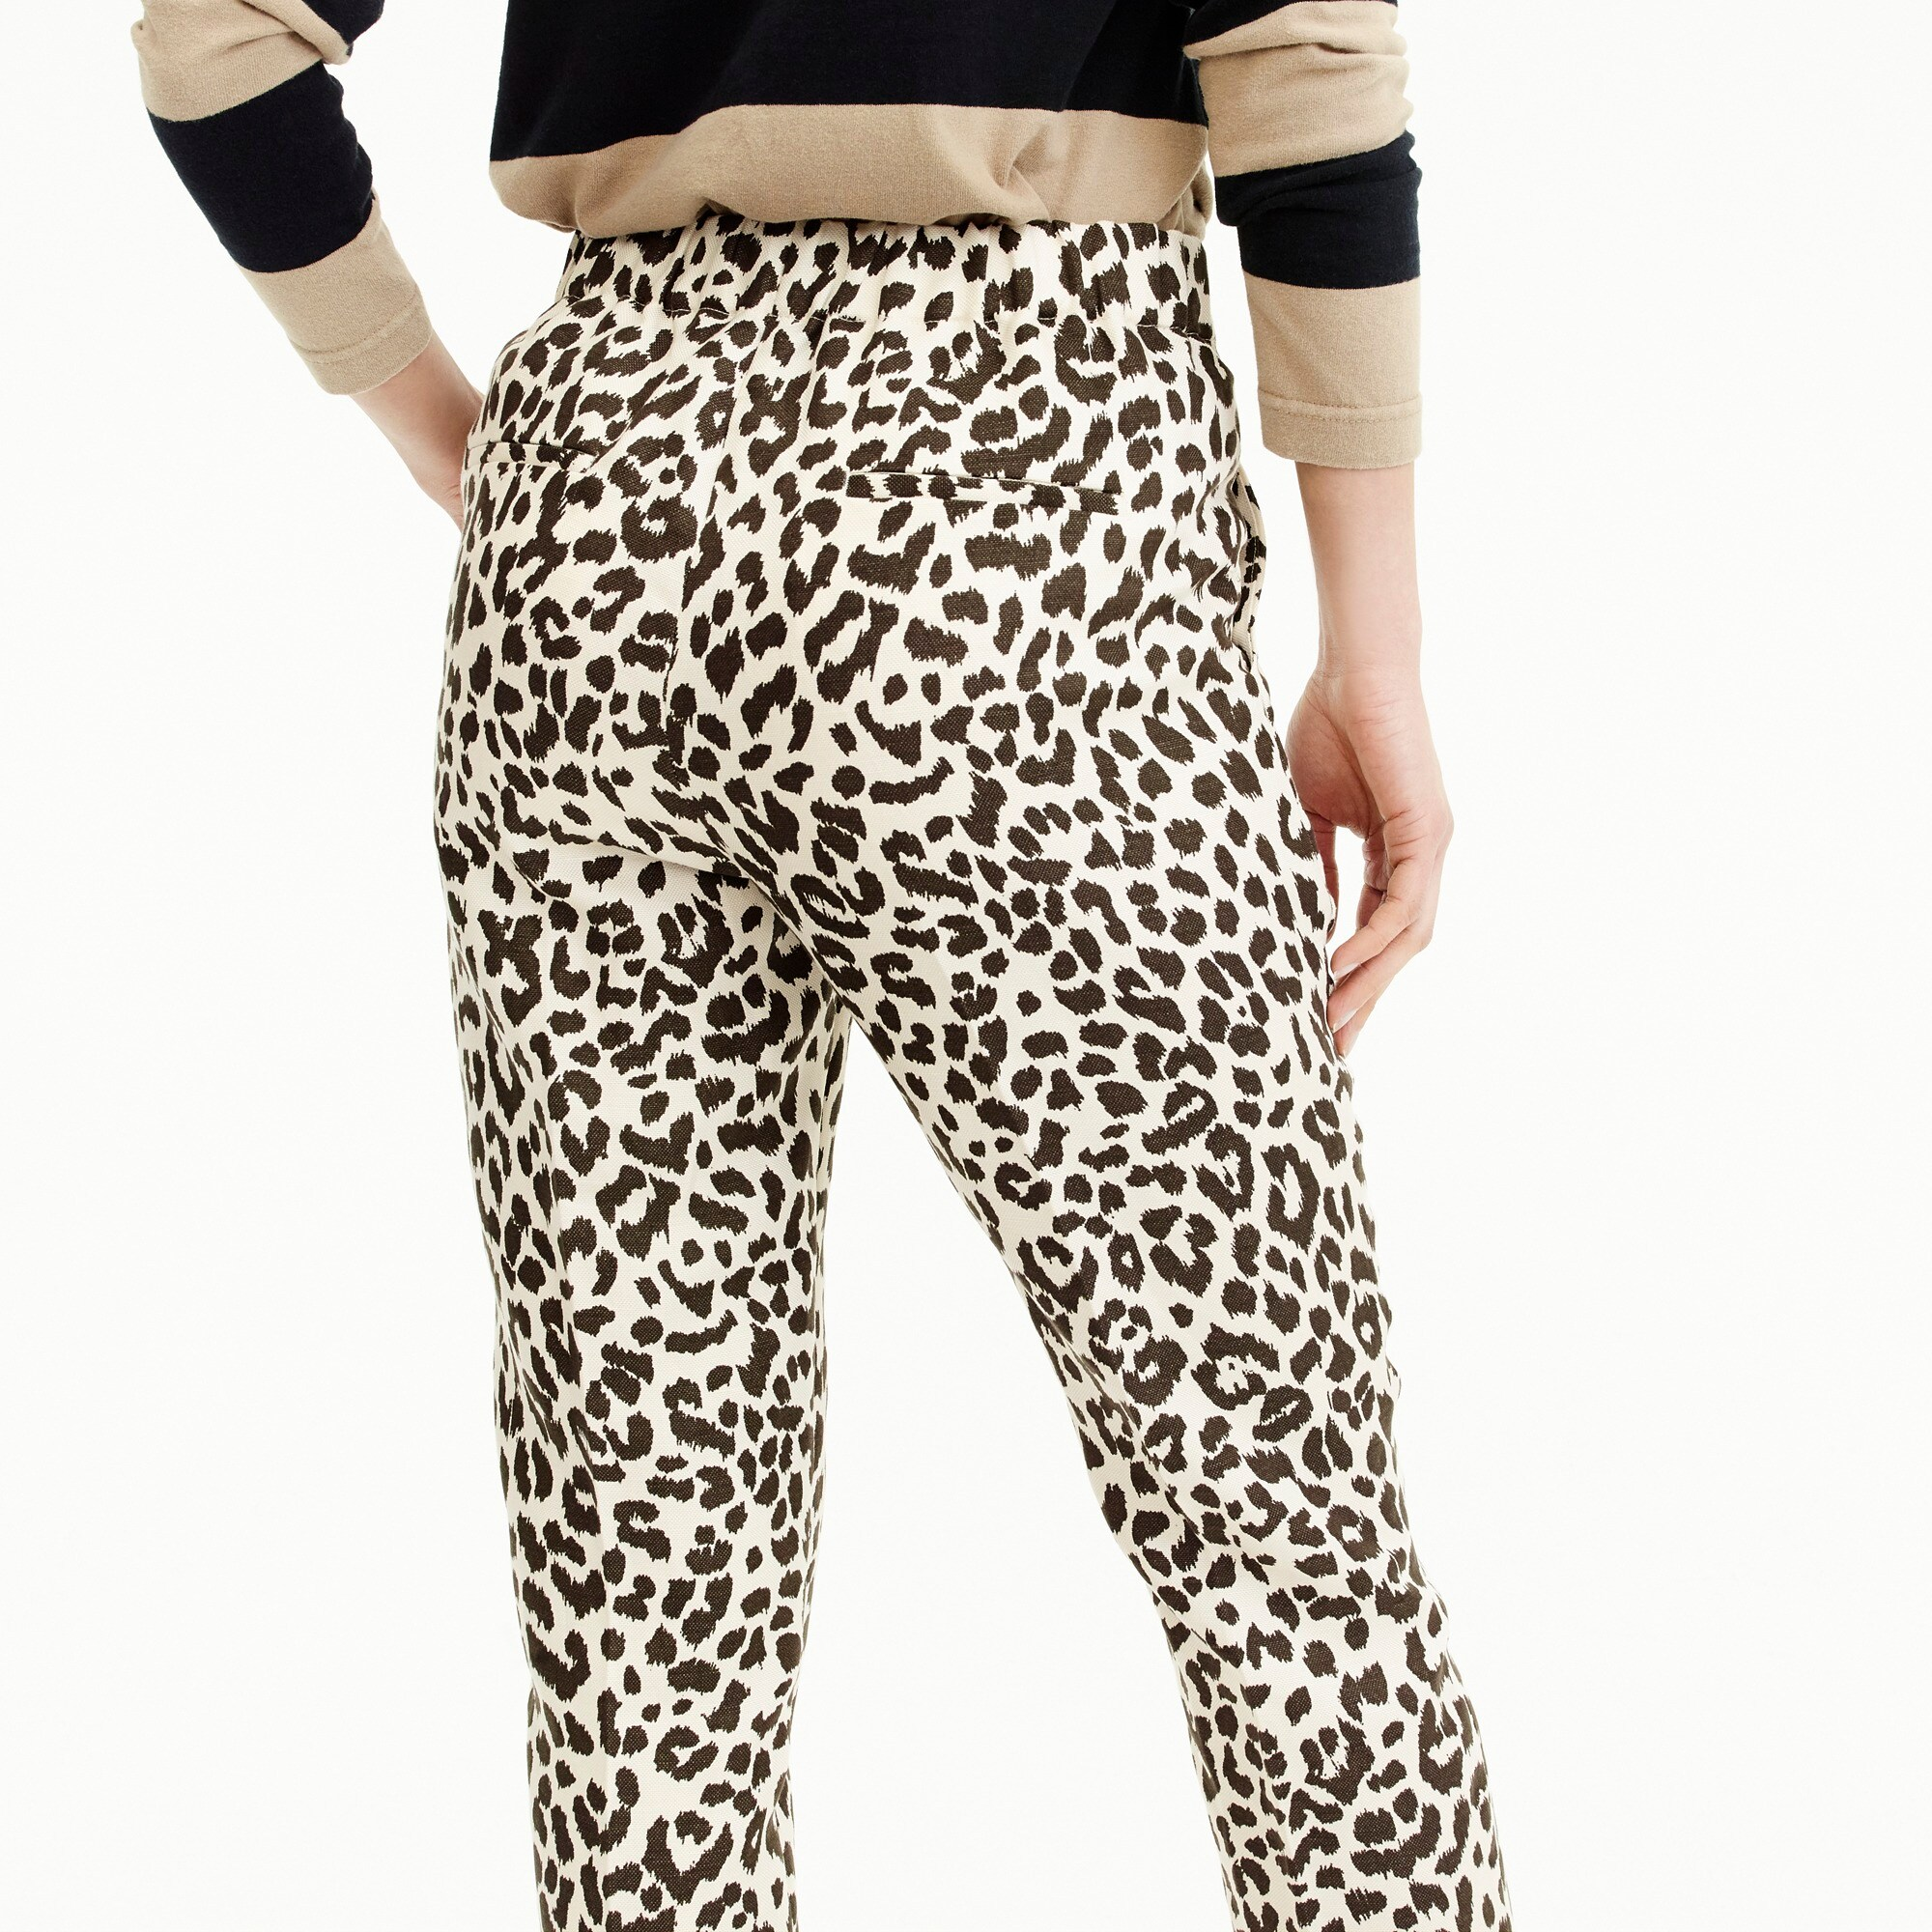 Image 3 for Easy pant in leopard